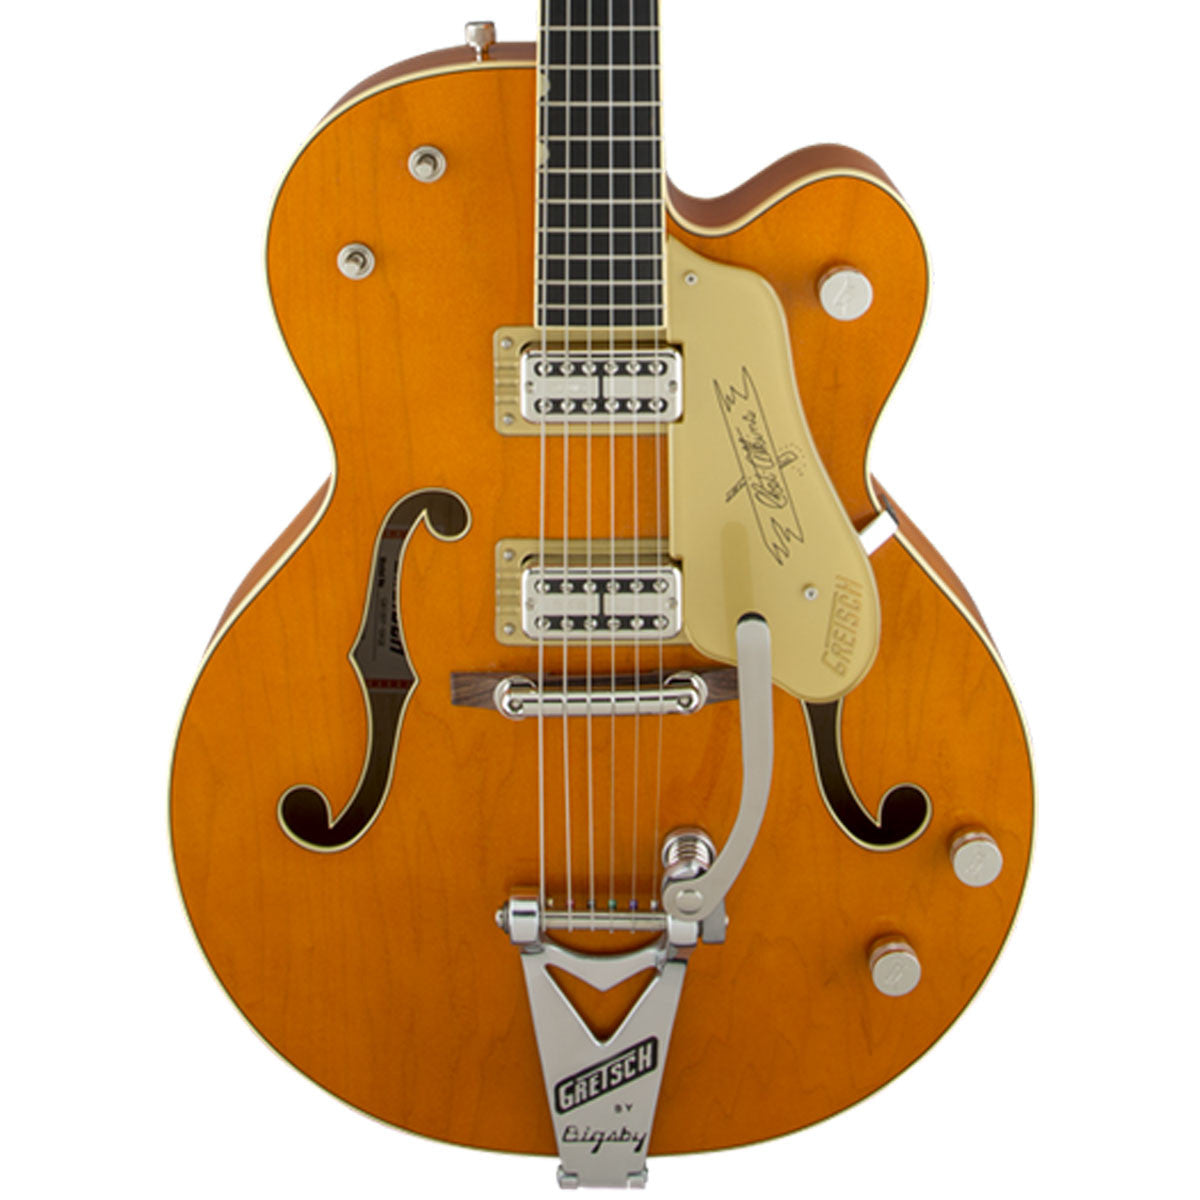 Gretsch G6120T-59GE Golden Era Edition 1959 Chet Atkins Hollow Body with Bigsby